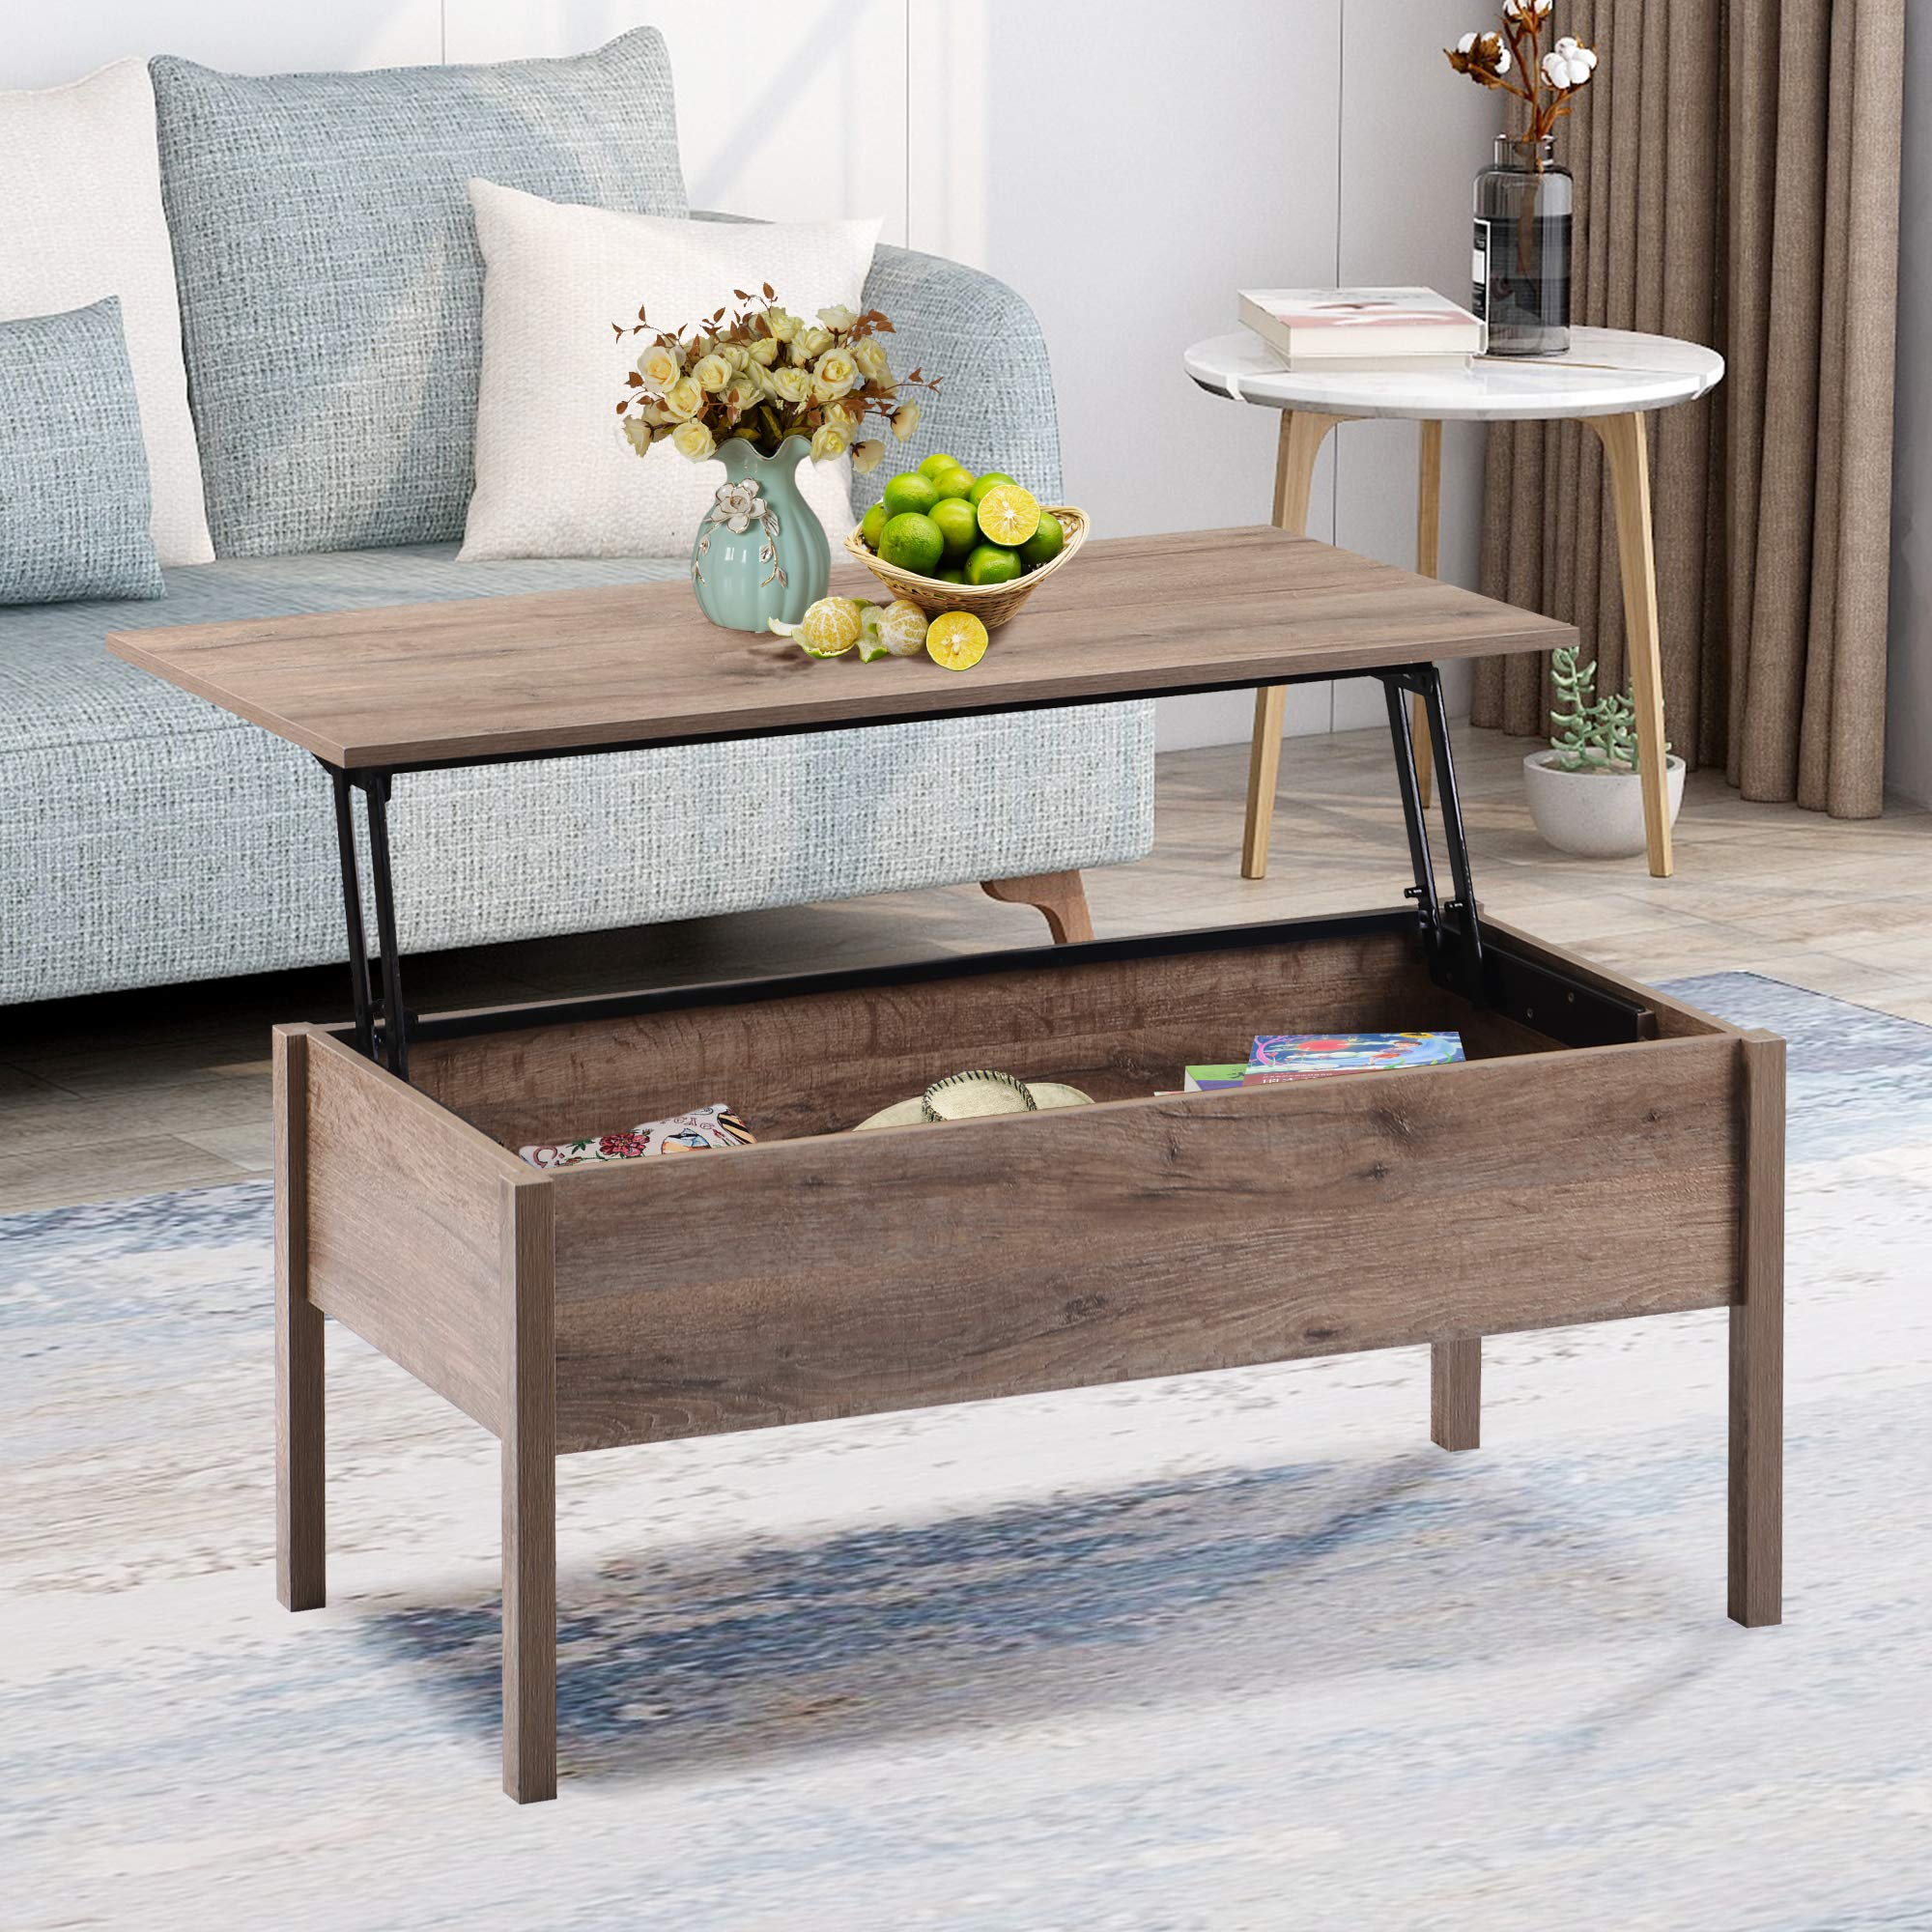 Lift Top Coffee Table With Storage Wood Cocktail Table Living Room Table With Hidden Storage Compartment And Lift Tabletop For Living Room Oak Buy Online In Bahrain At Desertcart